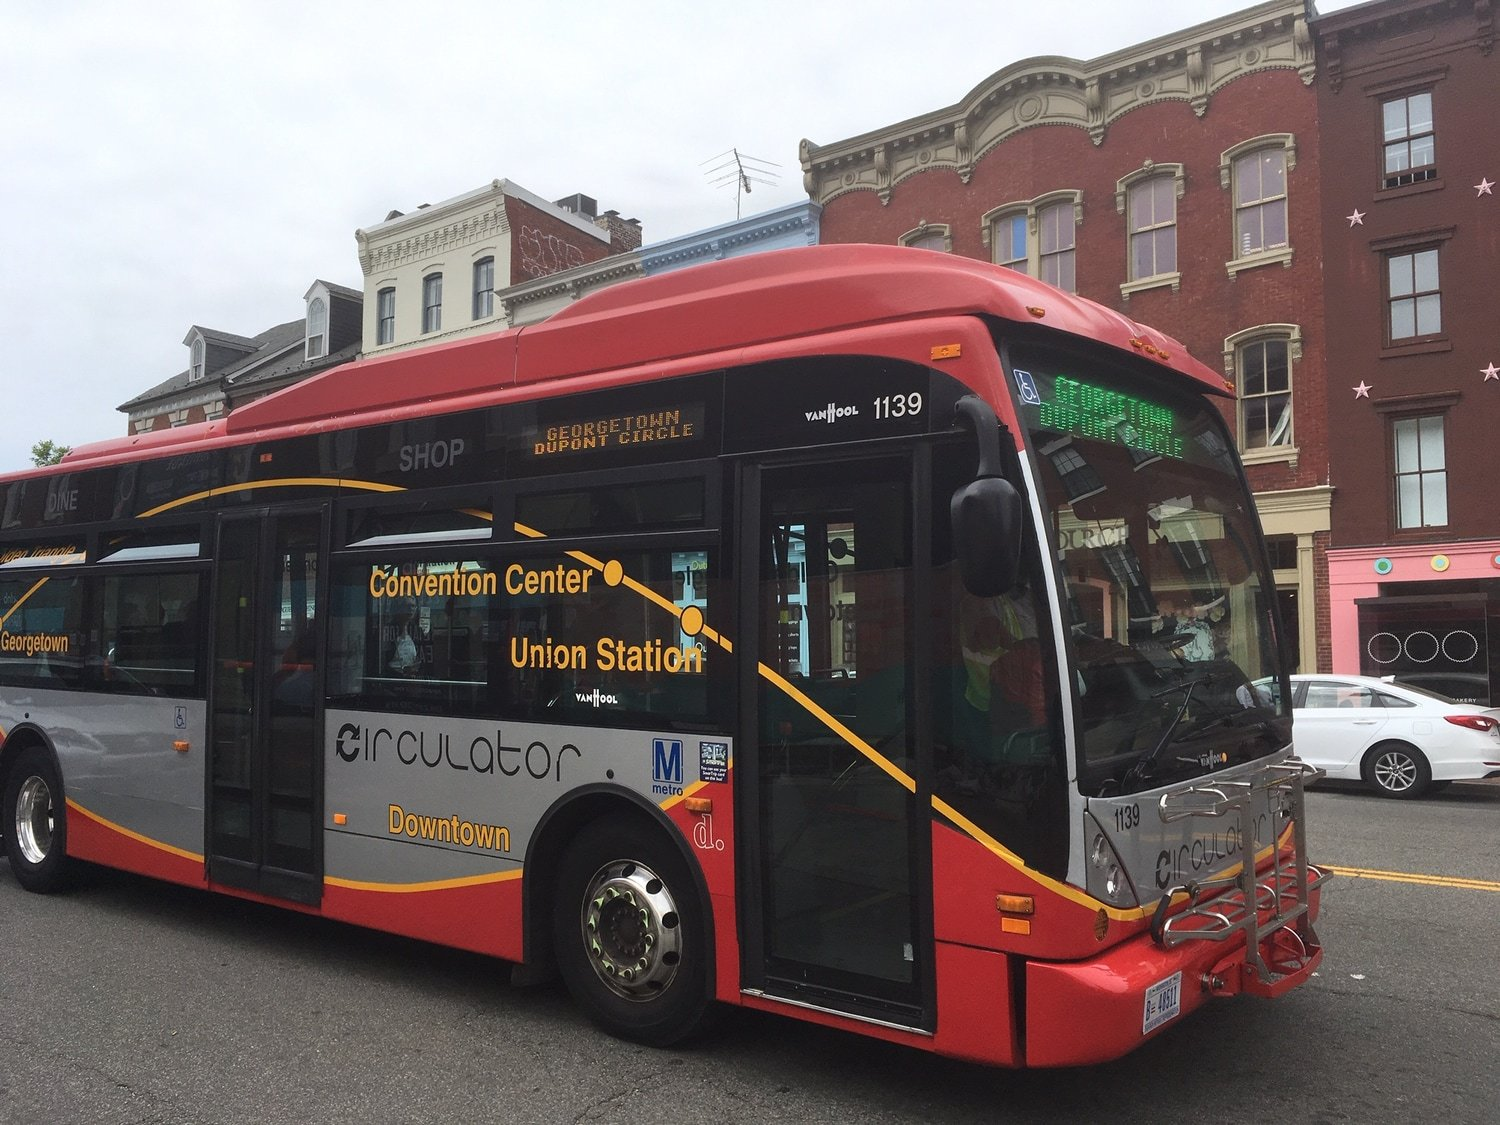 Circulator Bus - Georgetown - Washington, DC